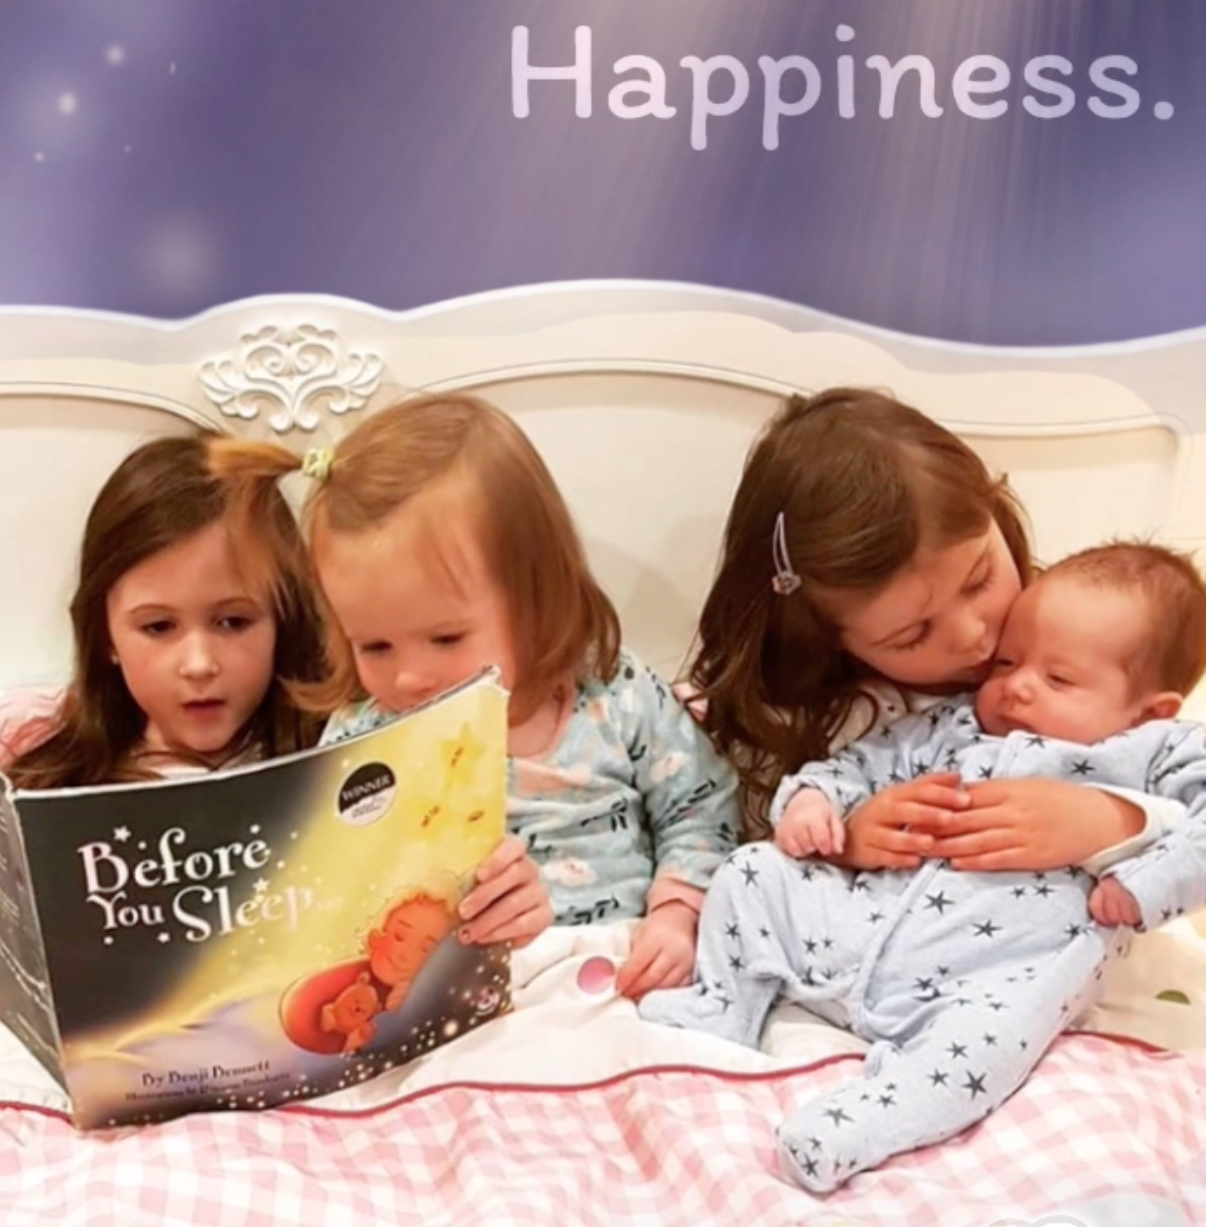 What Does Every Child Need Before They Sleep